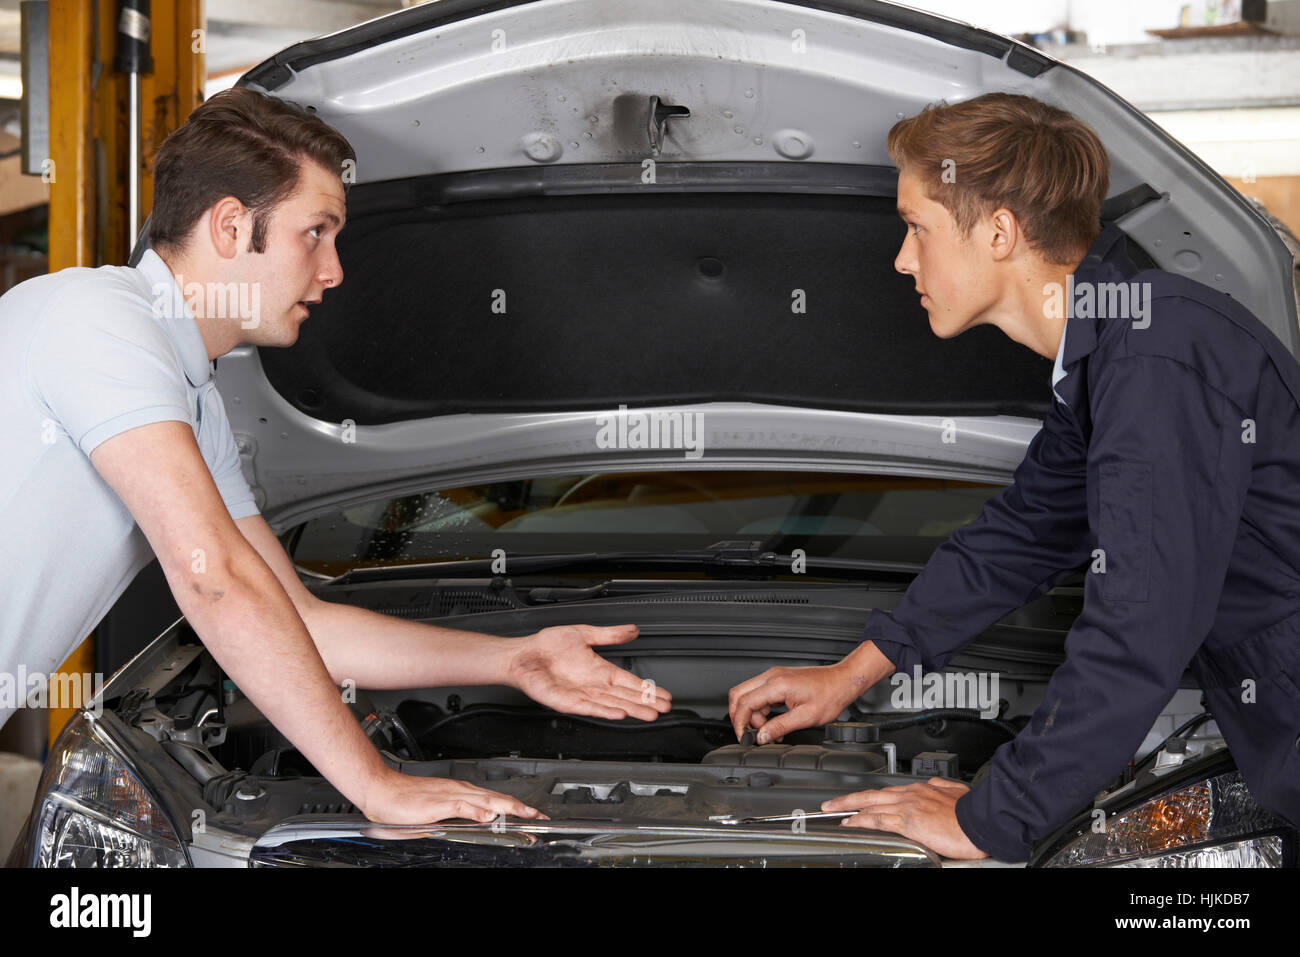 Mechanic Helping Apprentice To Fix Engine - Stock Image